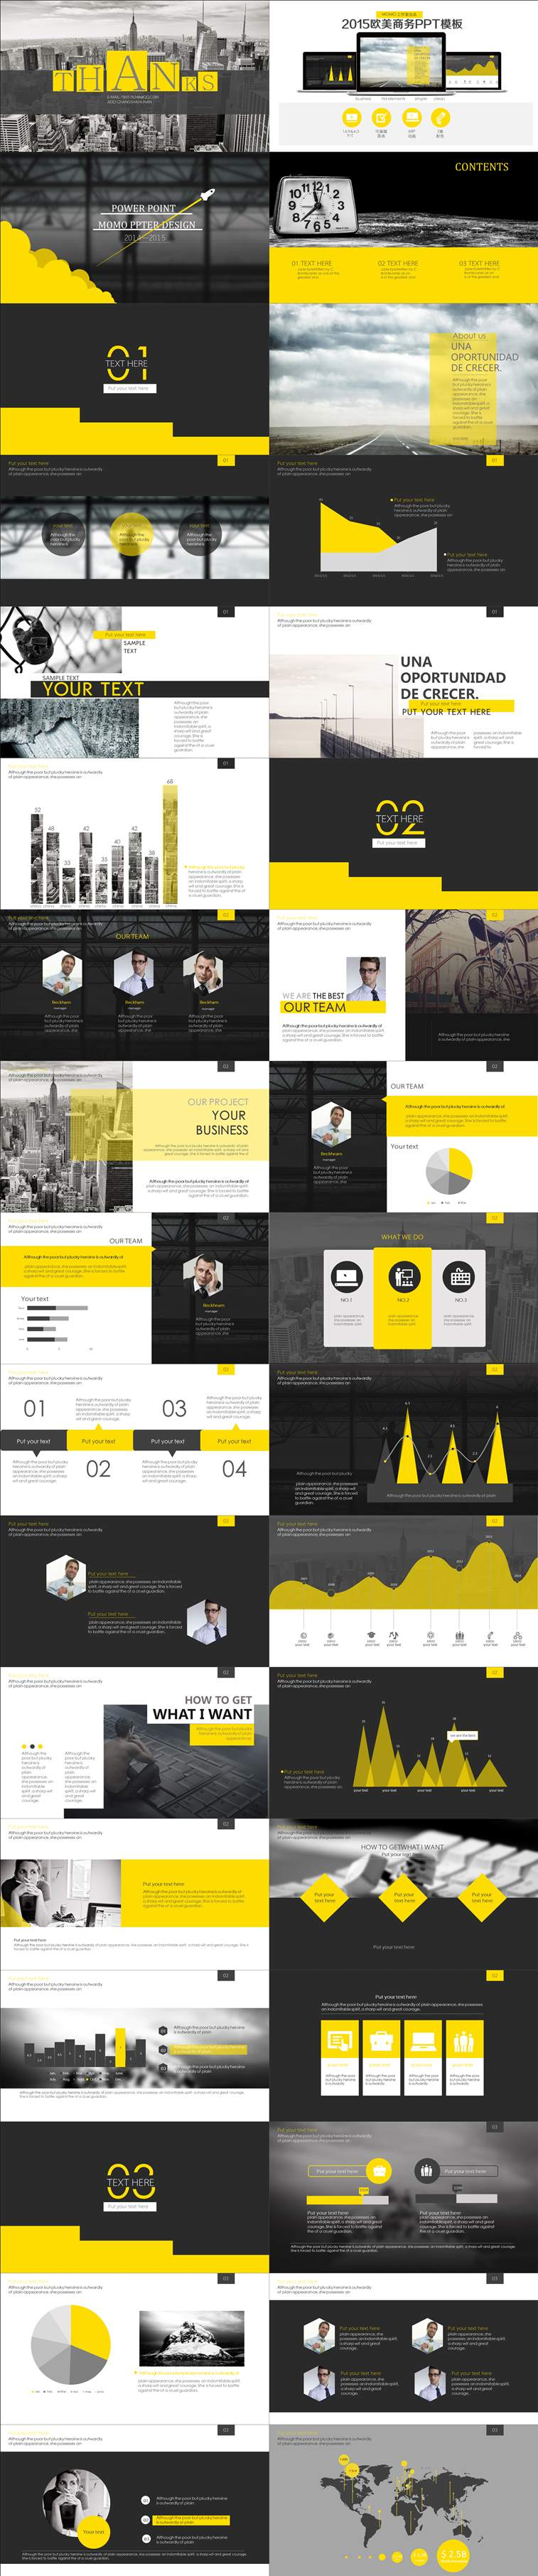 Fashion powerpoint template by momo ppt pinterest template fashion powerpoint template by momo toneelgroepblik Image collections